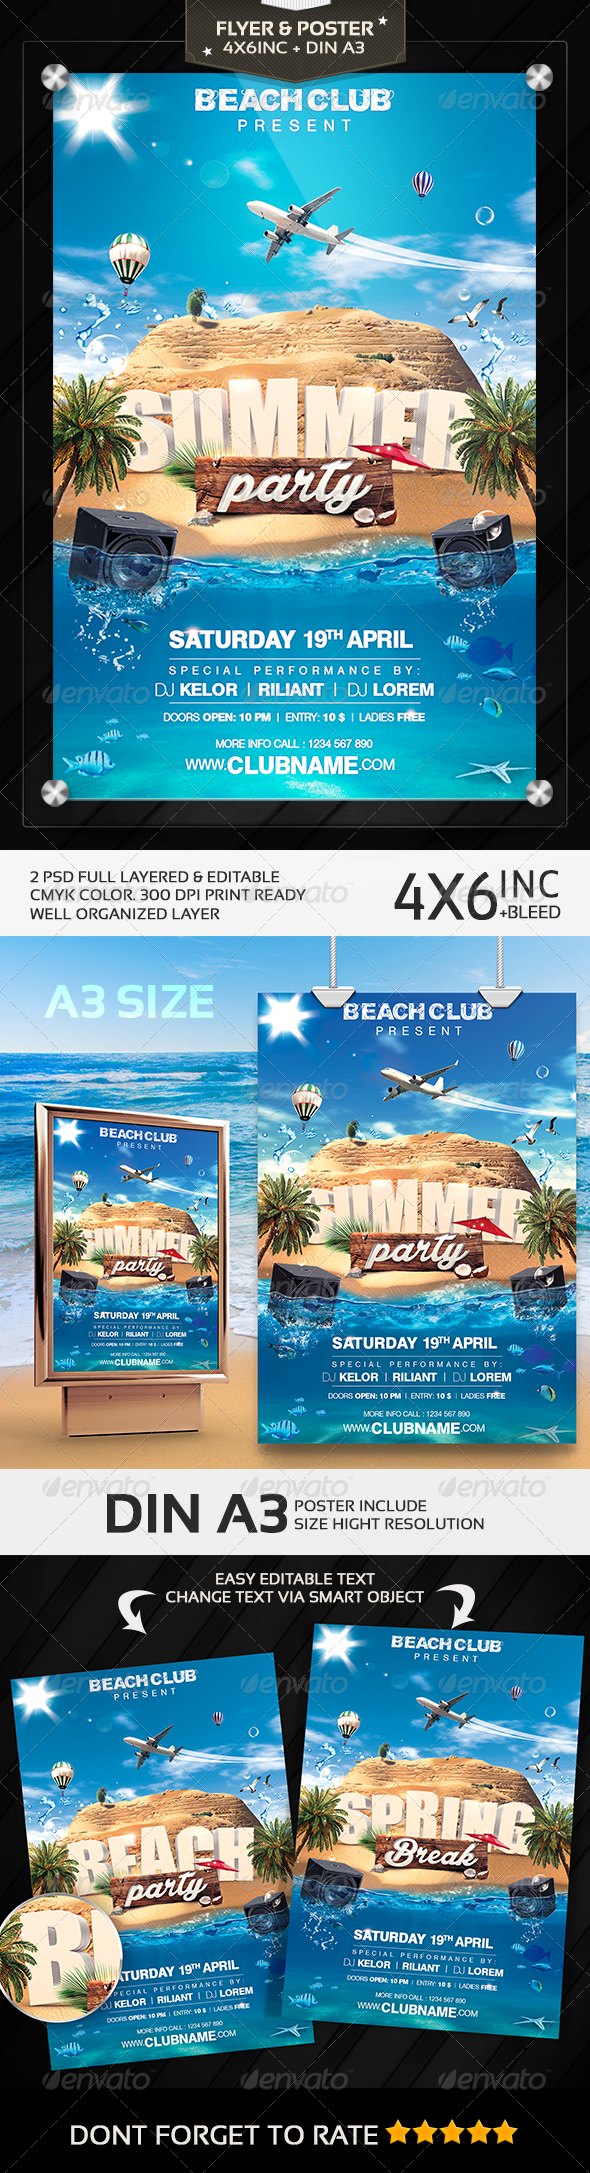 Summer Party | Spring Break | Beach Party Flyer - Clubs & Parties Events